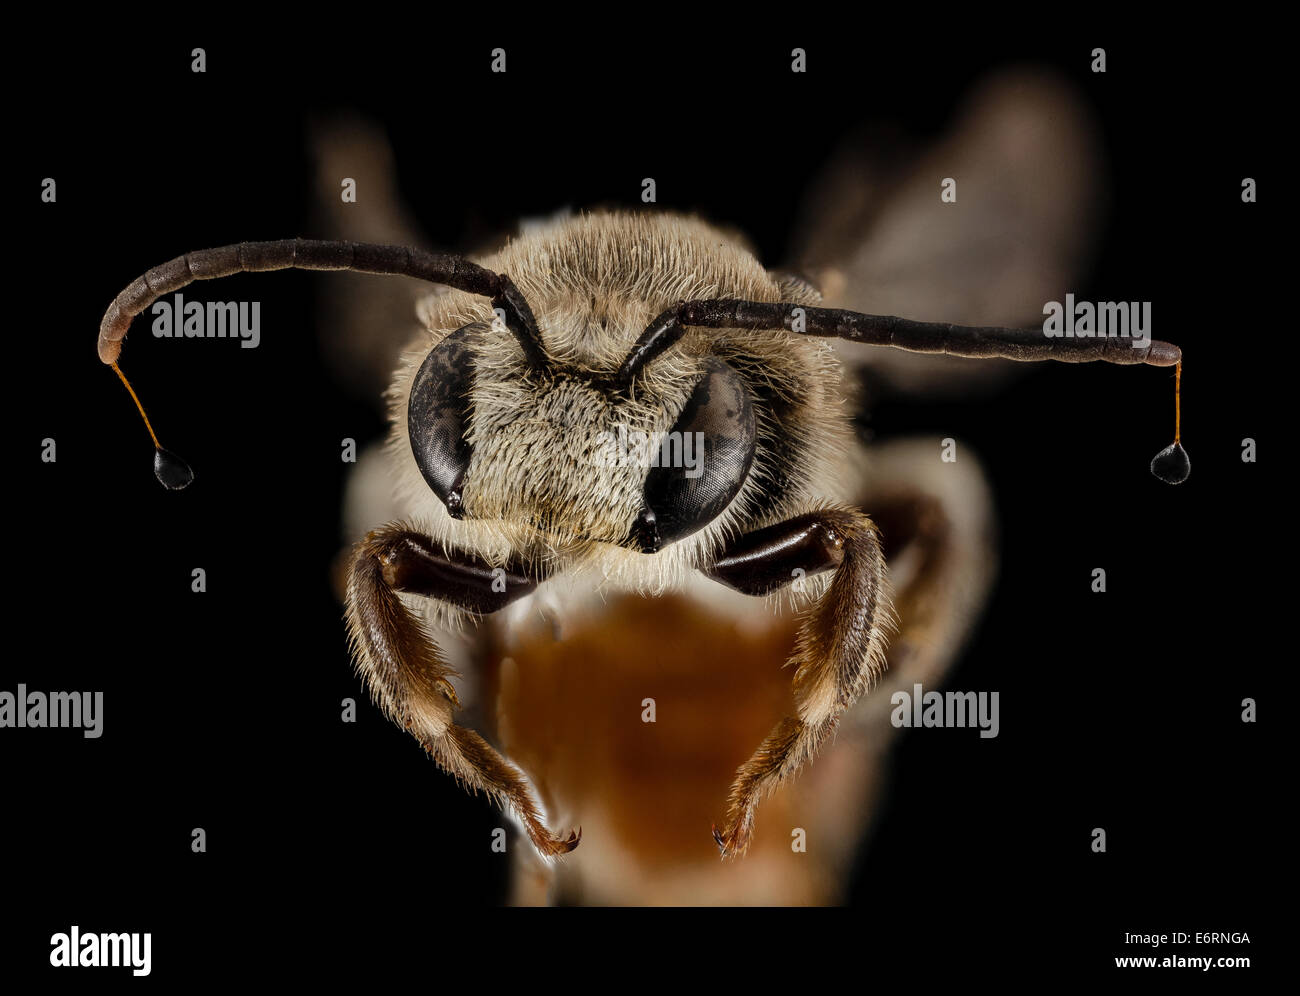 Nomia heart antennae, m, 15266b02, face, kenya_2014-08-04-195216 ZS PMax_14922843736_o From Kenya comes yet another - Stock Image